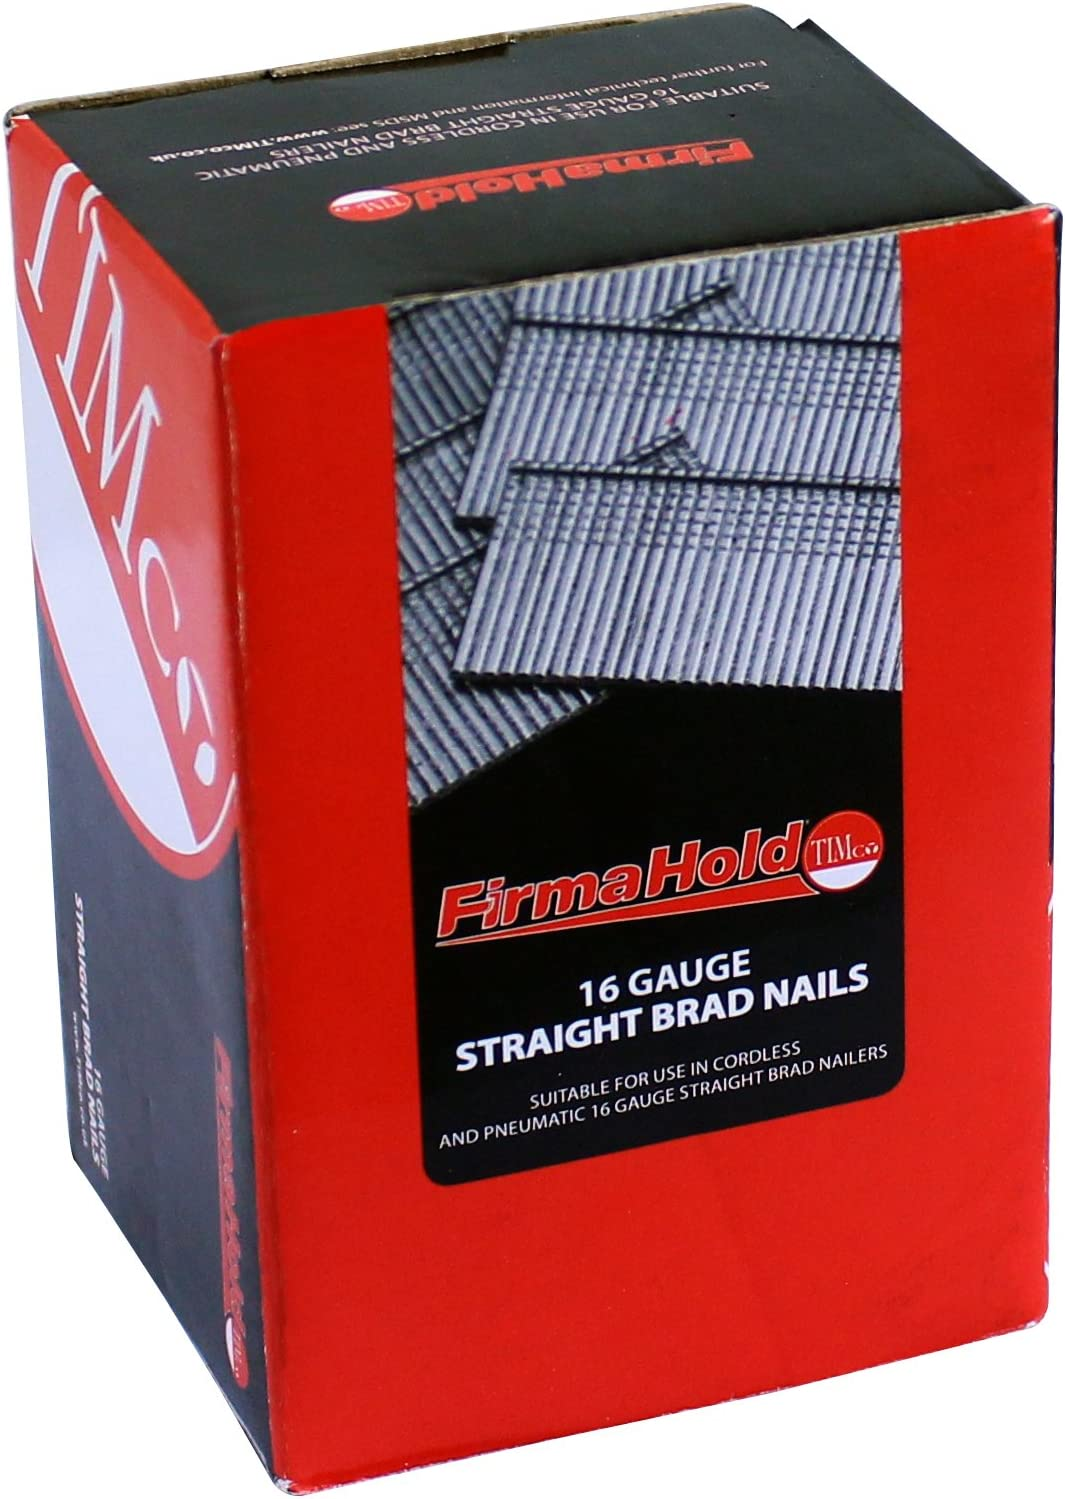 5000 Nails Firmahold Nail Pack Straight Galv 18 Gauge x 16mm